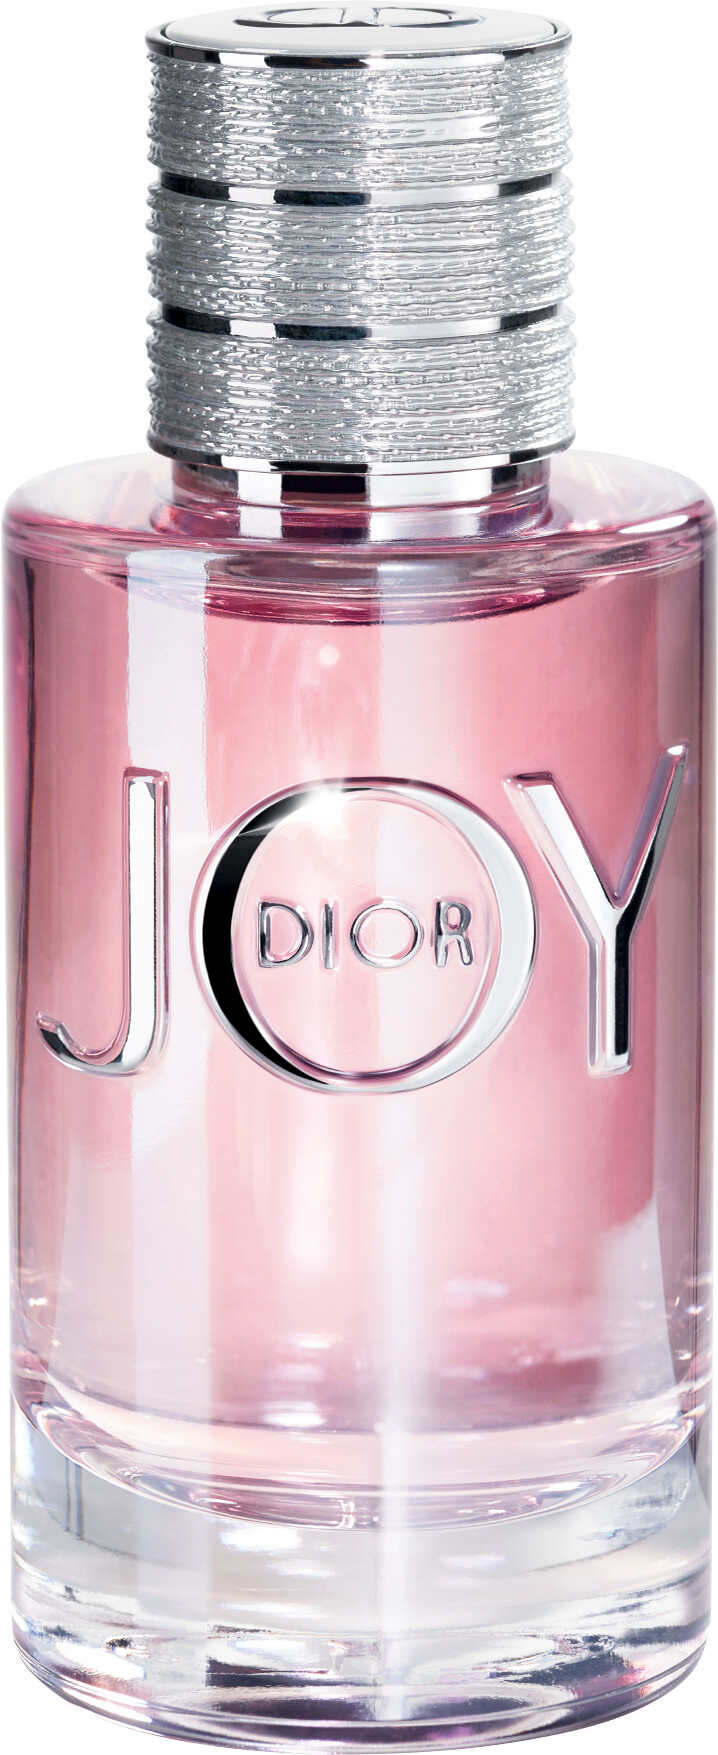 joy dior parfum 90ml